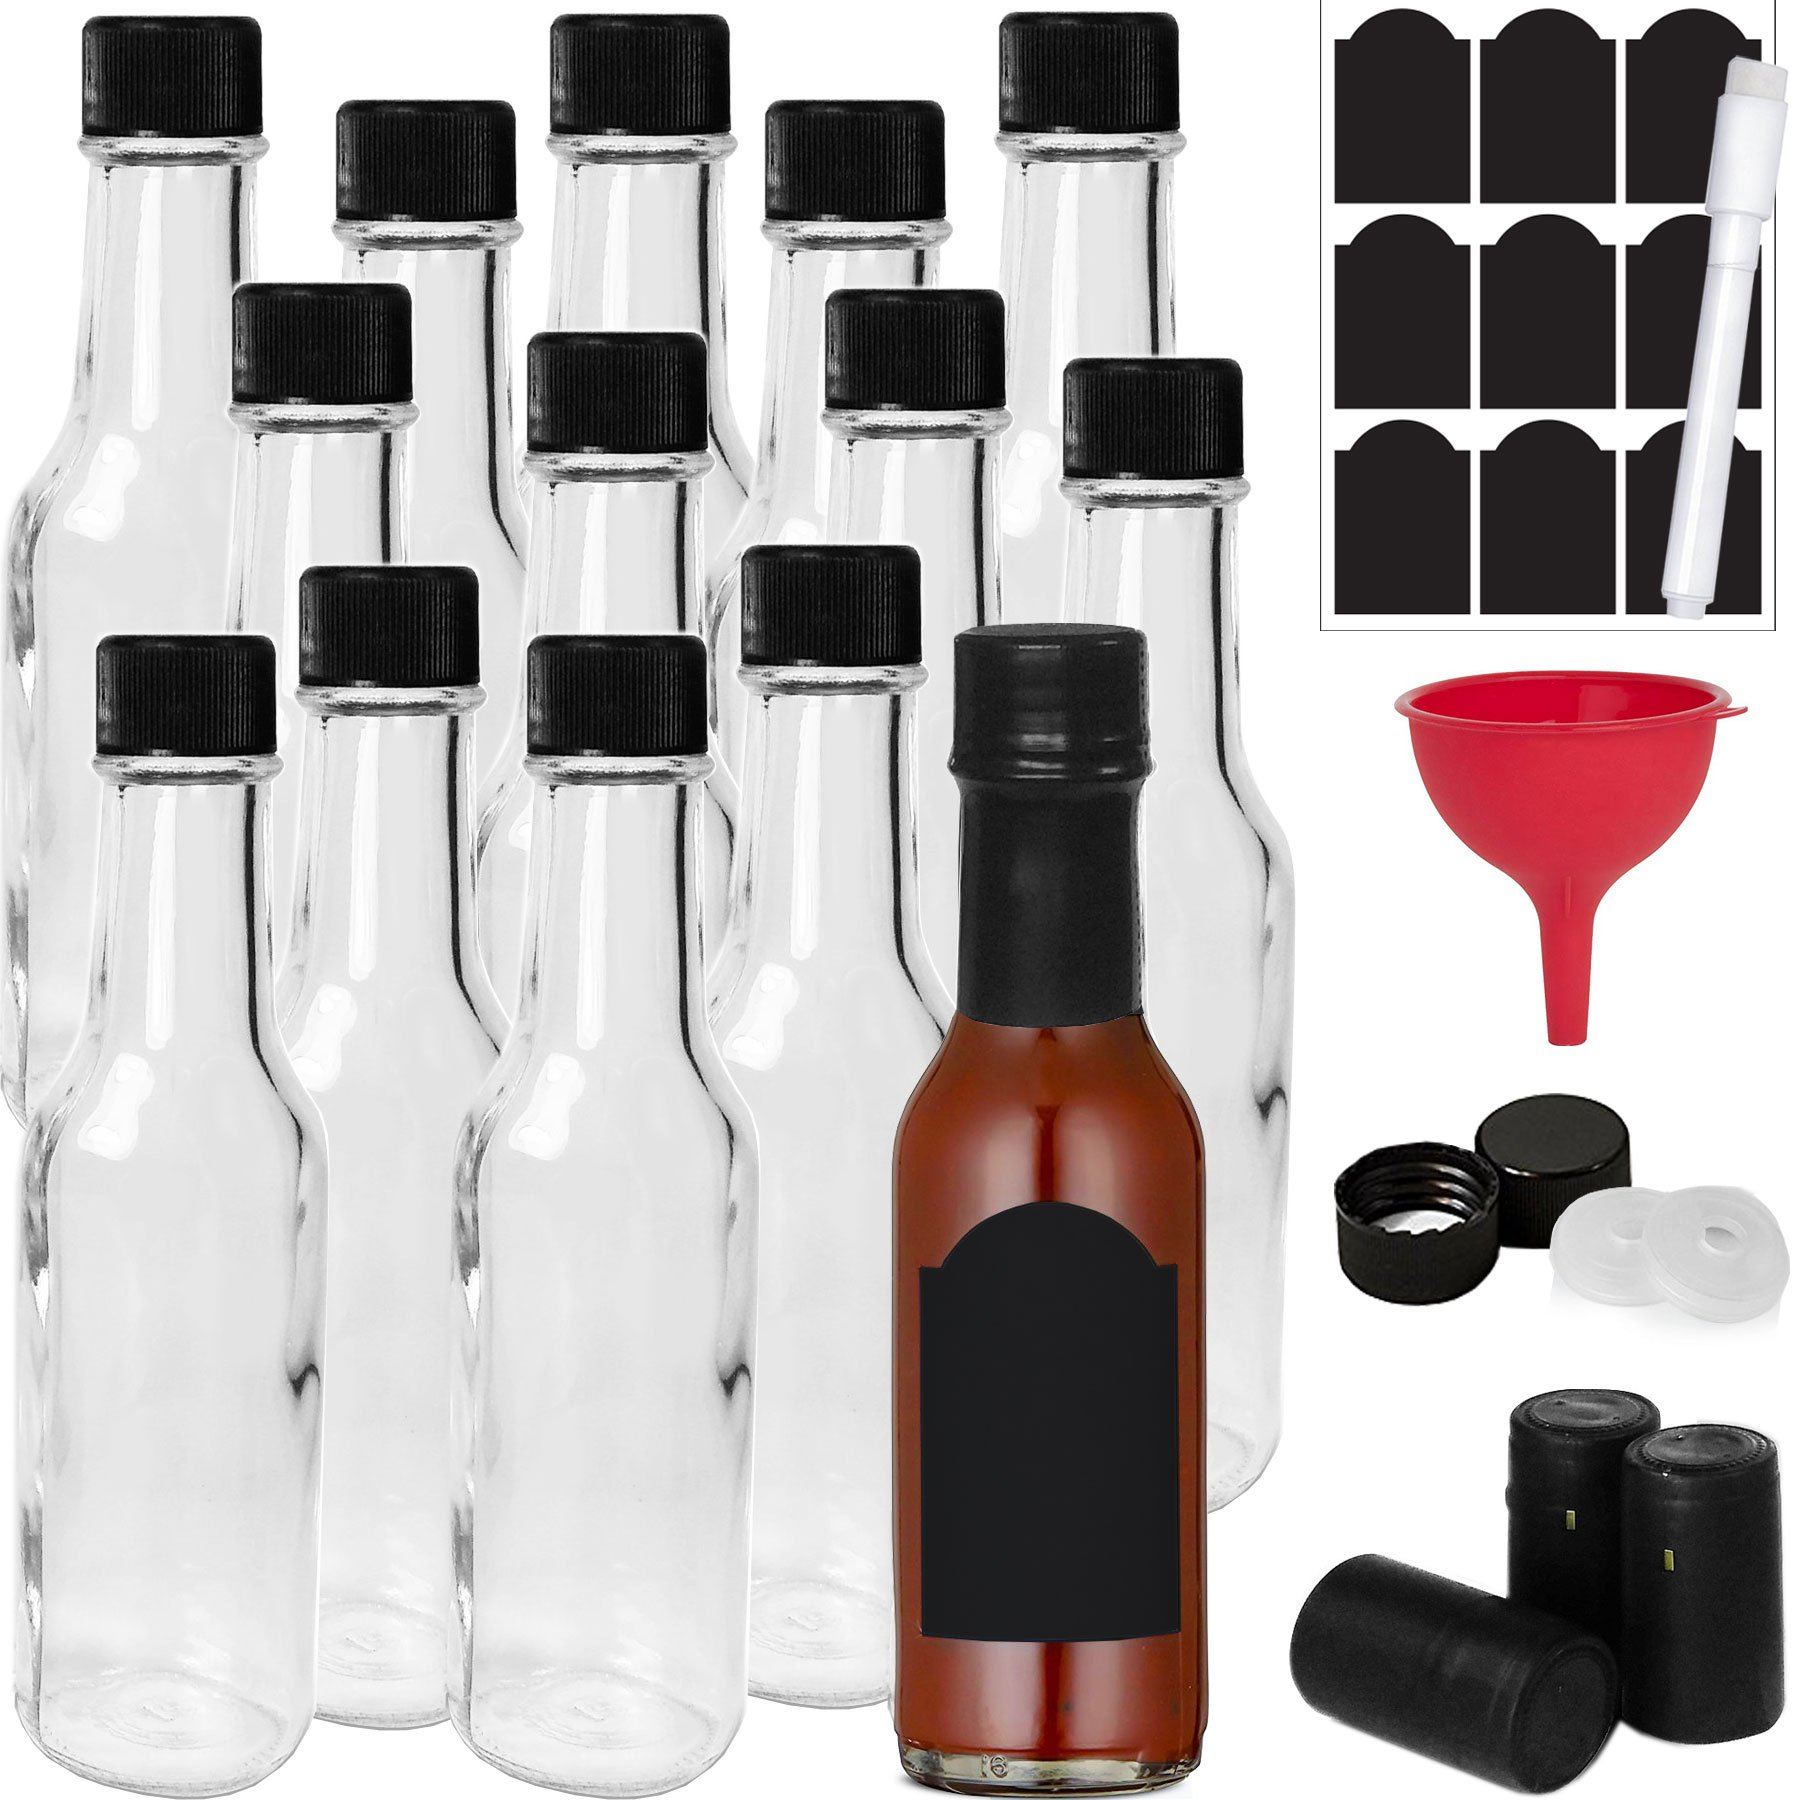 14-PACK Hot Sauce Bottles 5oz with Caps, Funnel for Kitchen, Chalk Labels & Marker, Shrink Capsules, Dripper Inserts. Mini Wine Bottle Hot Sauce Kit, 5 Oz Woozy Glass Bottle Dasher by Talented Kitchen